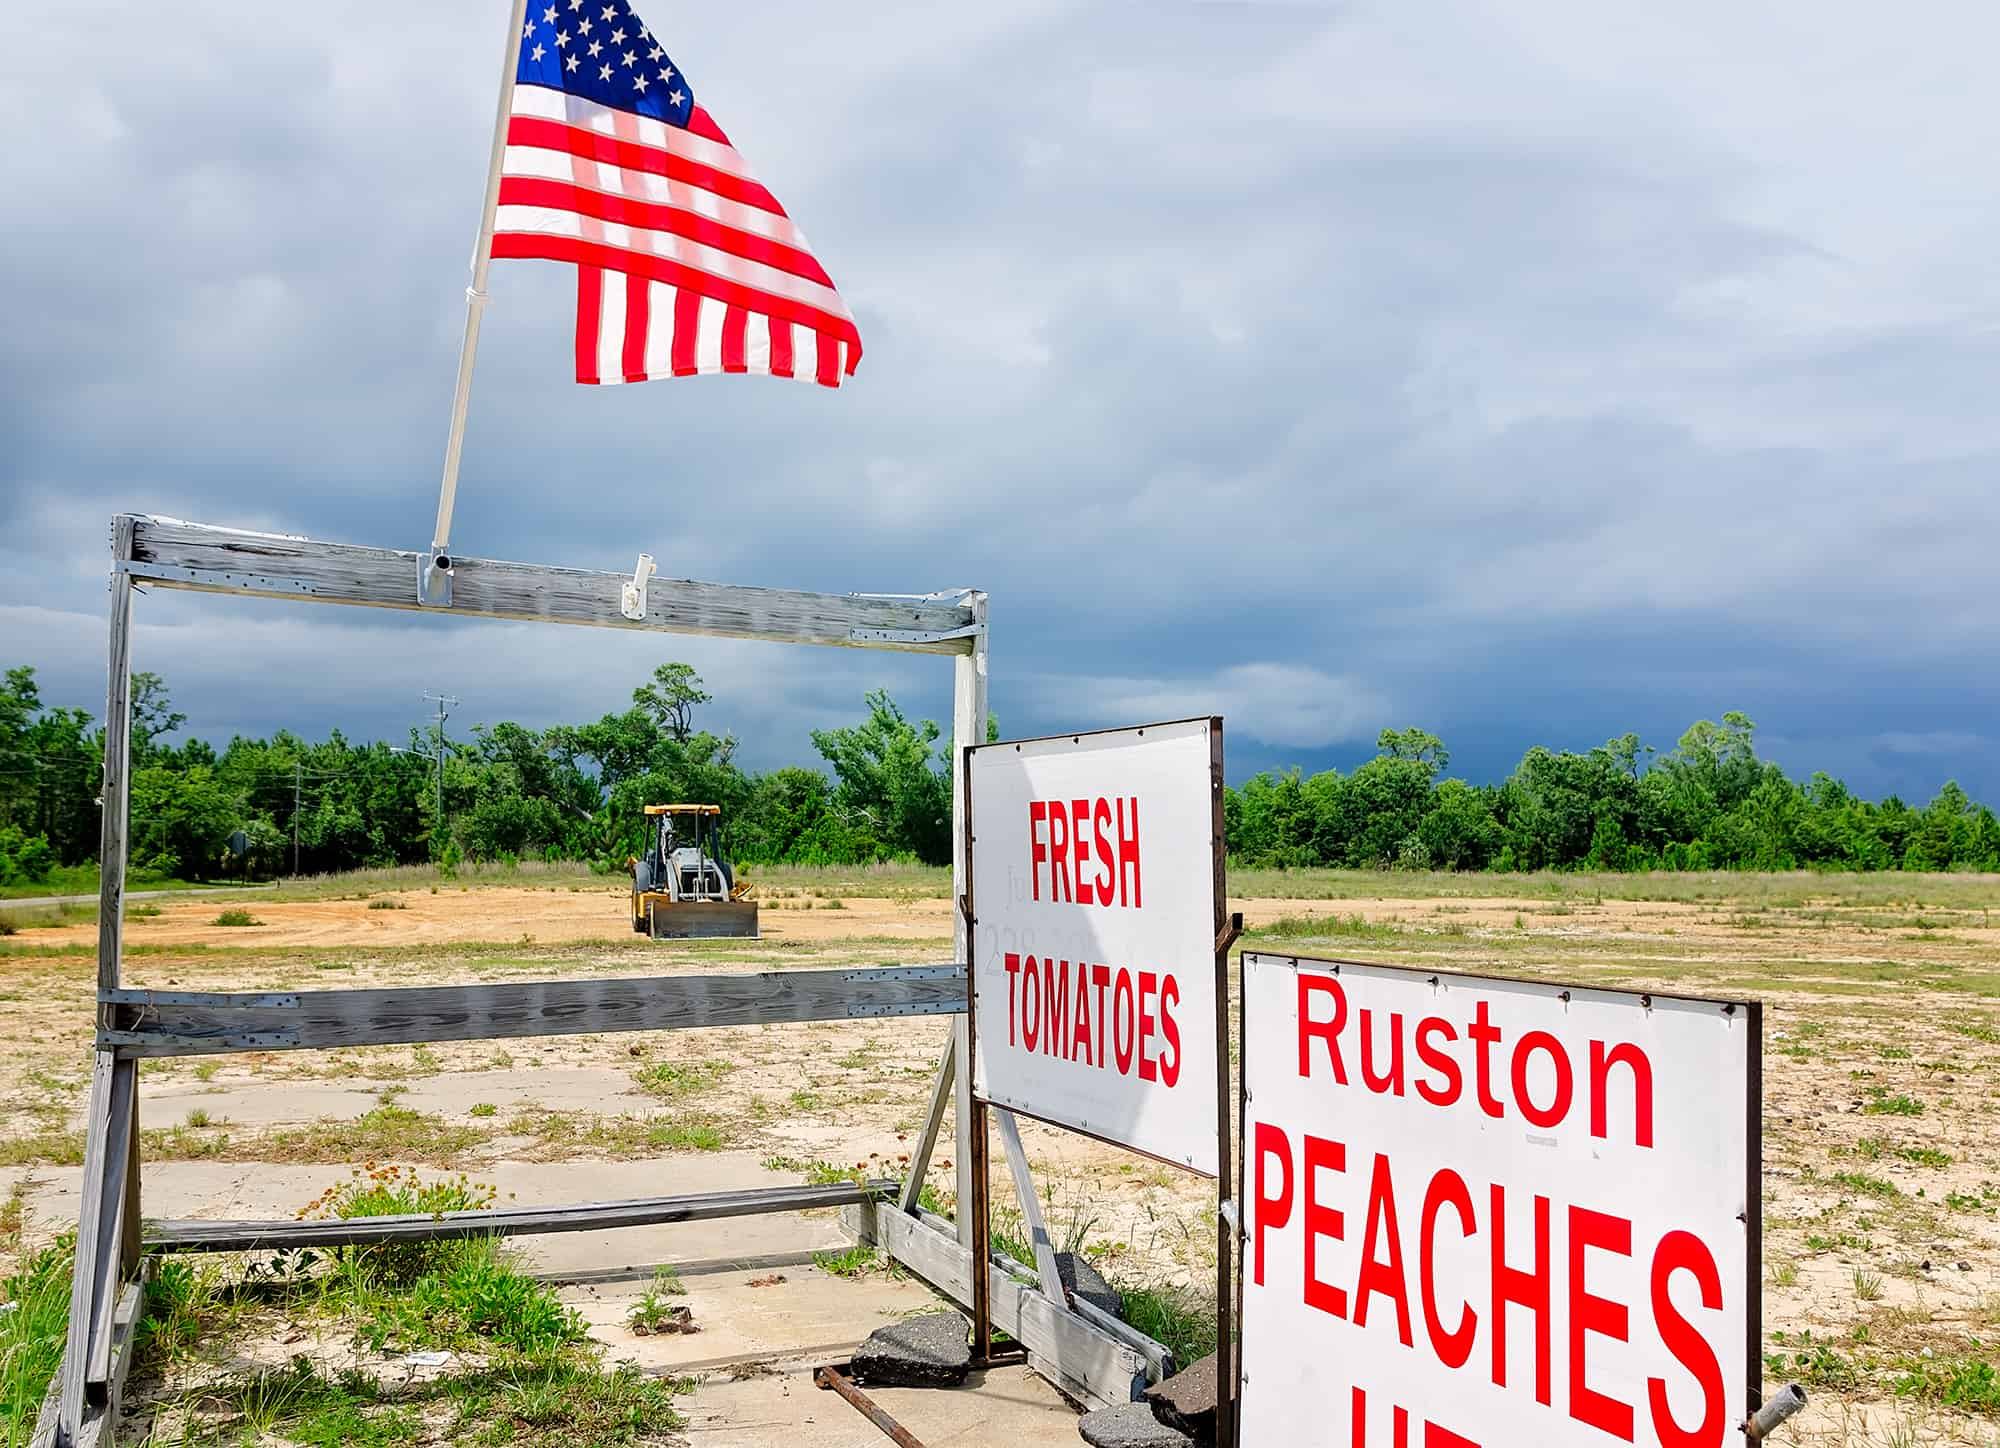 American flag with Ruston peaches sign at a roadside fruit stand in Pass Christian Mississippi